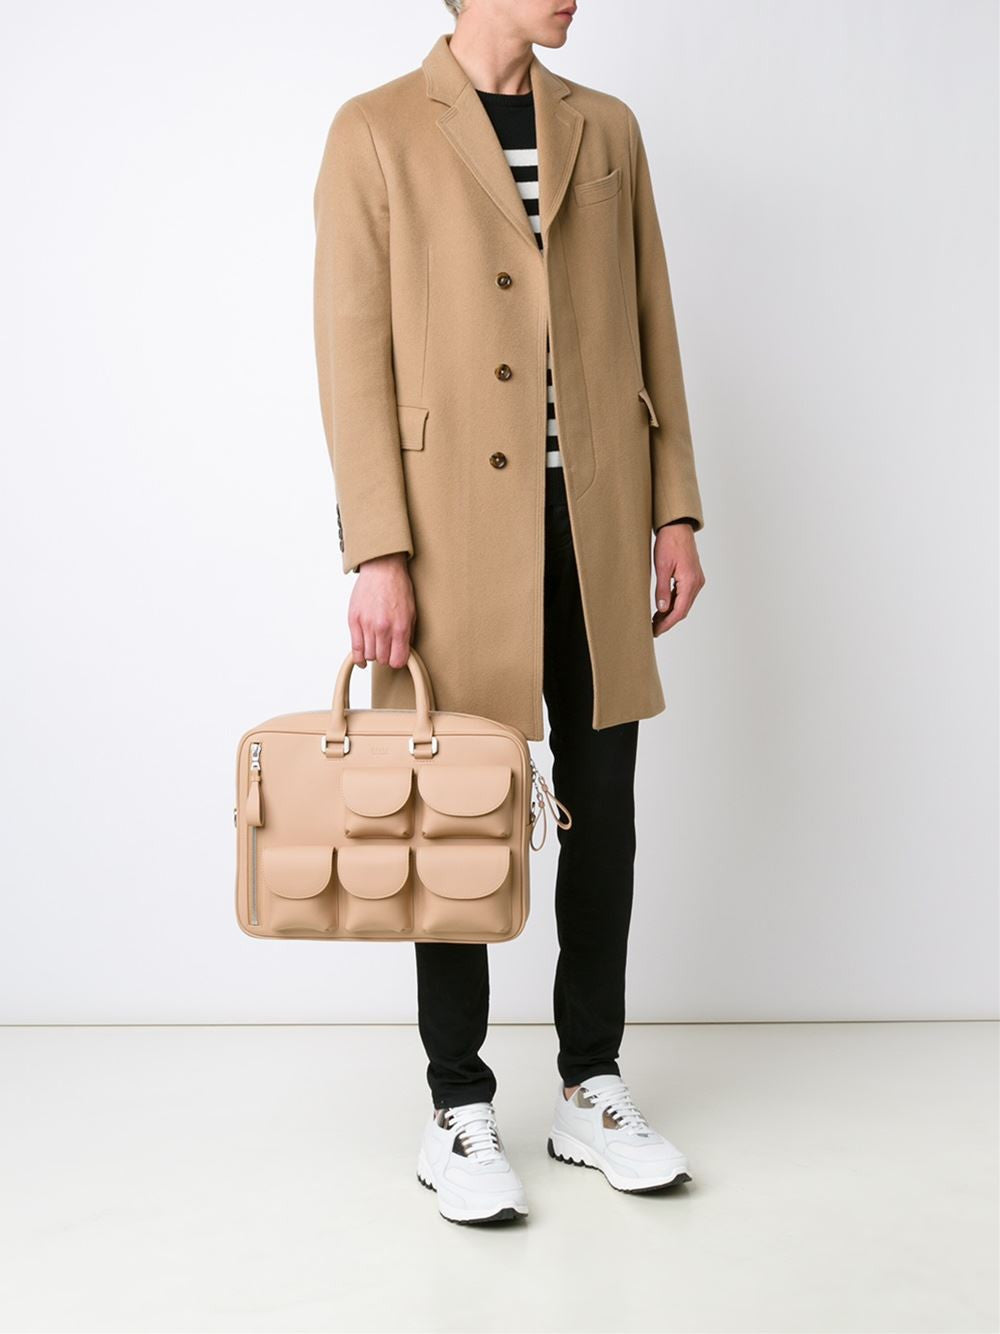 Leather 'Explorer' Bag | VLSEP001 EXPLORER